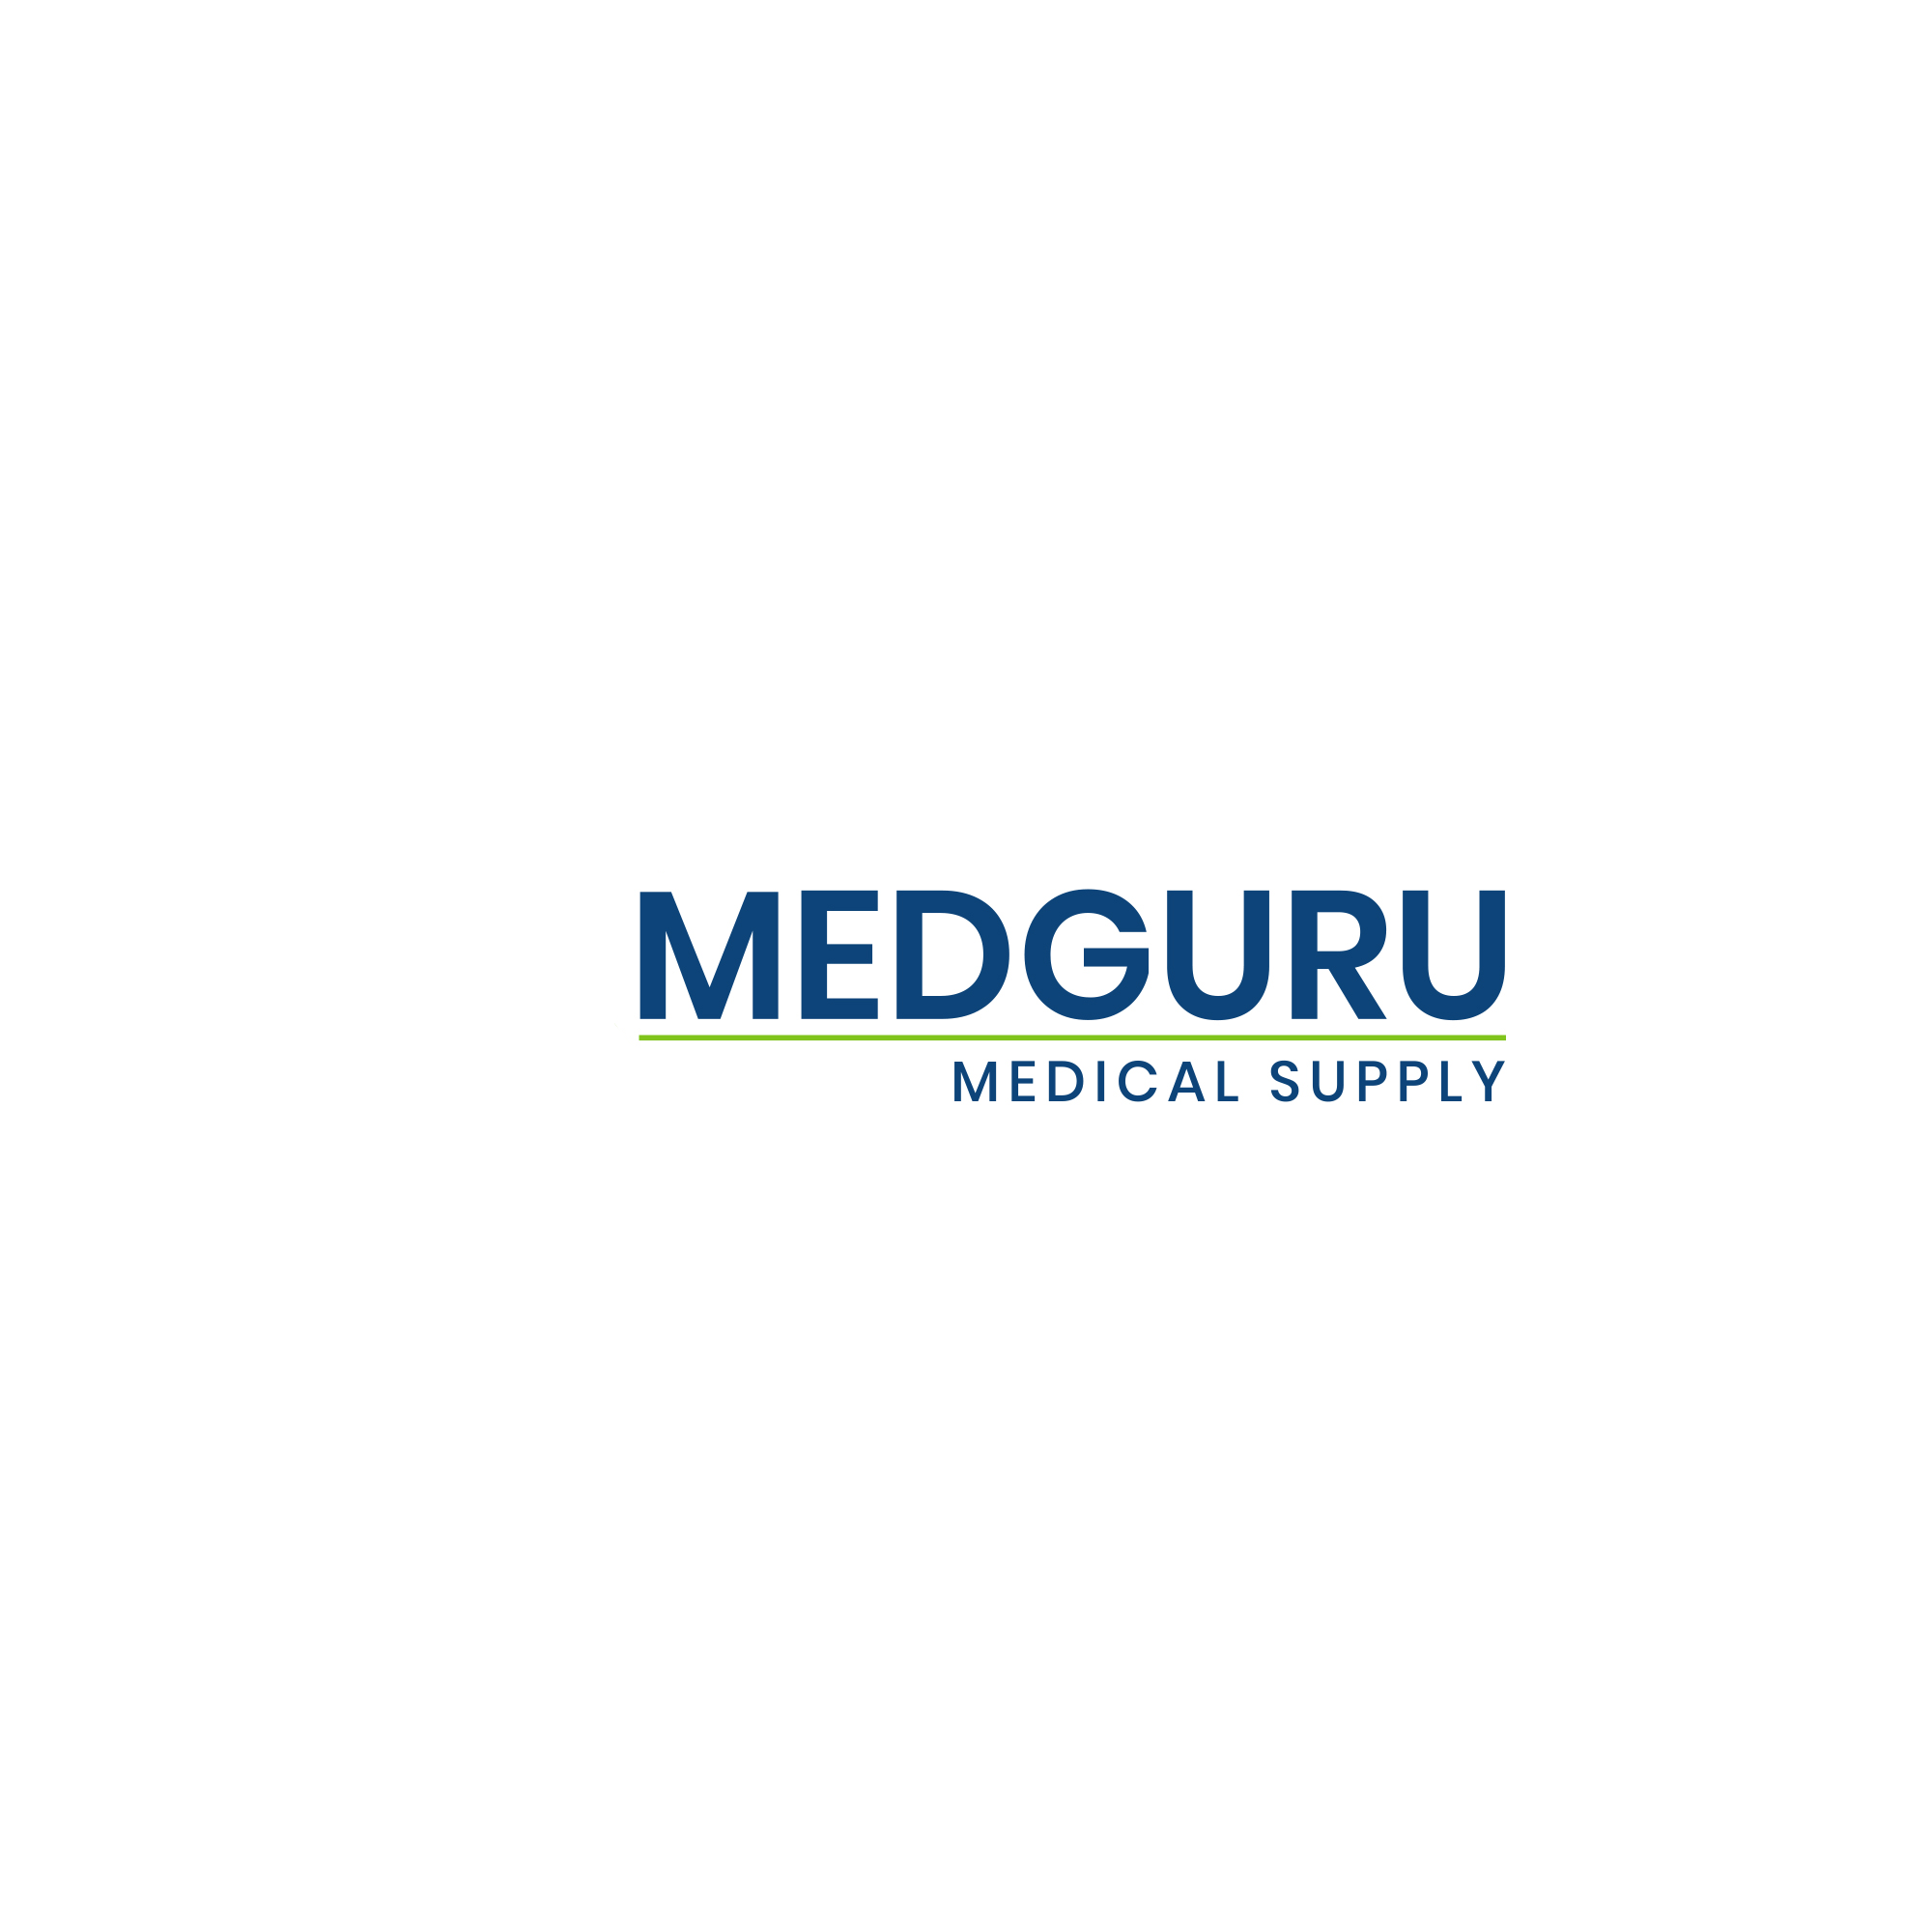 Medguru Medical Supply